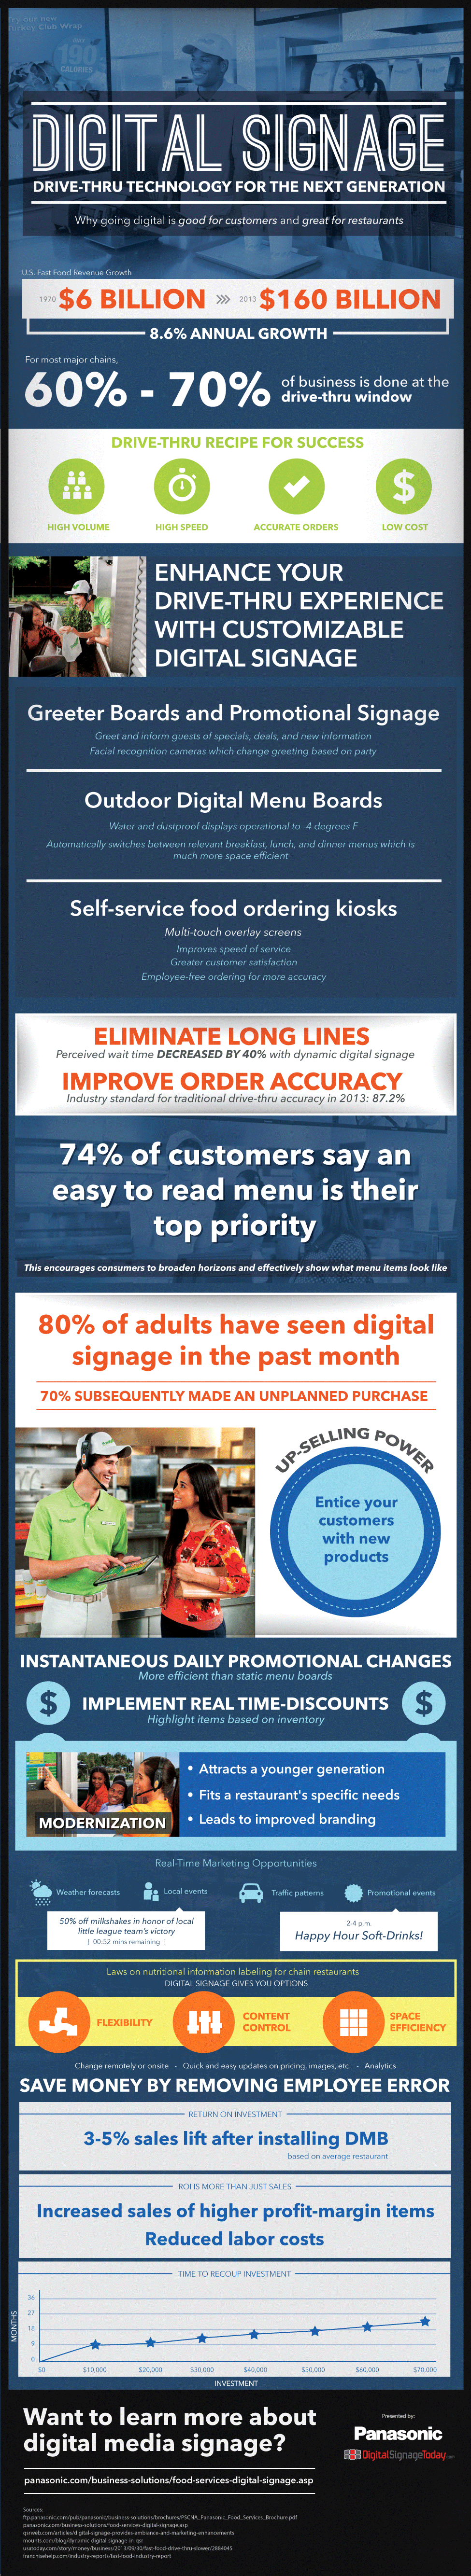 Digital Signage: Drive-Thru Technology For the Next Generation